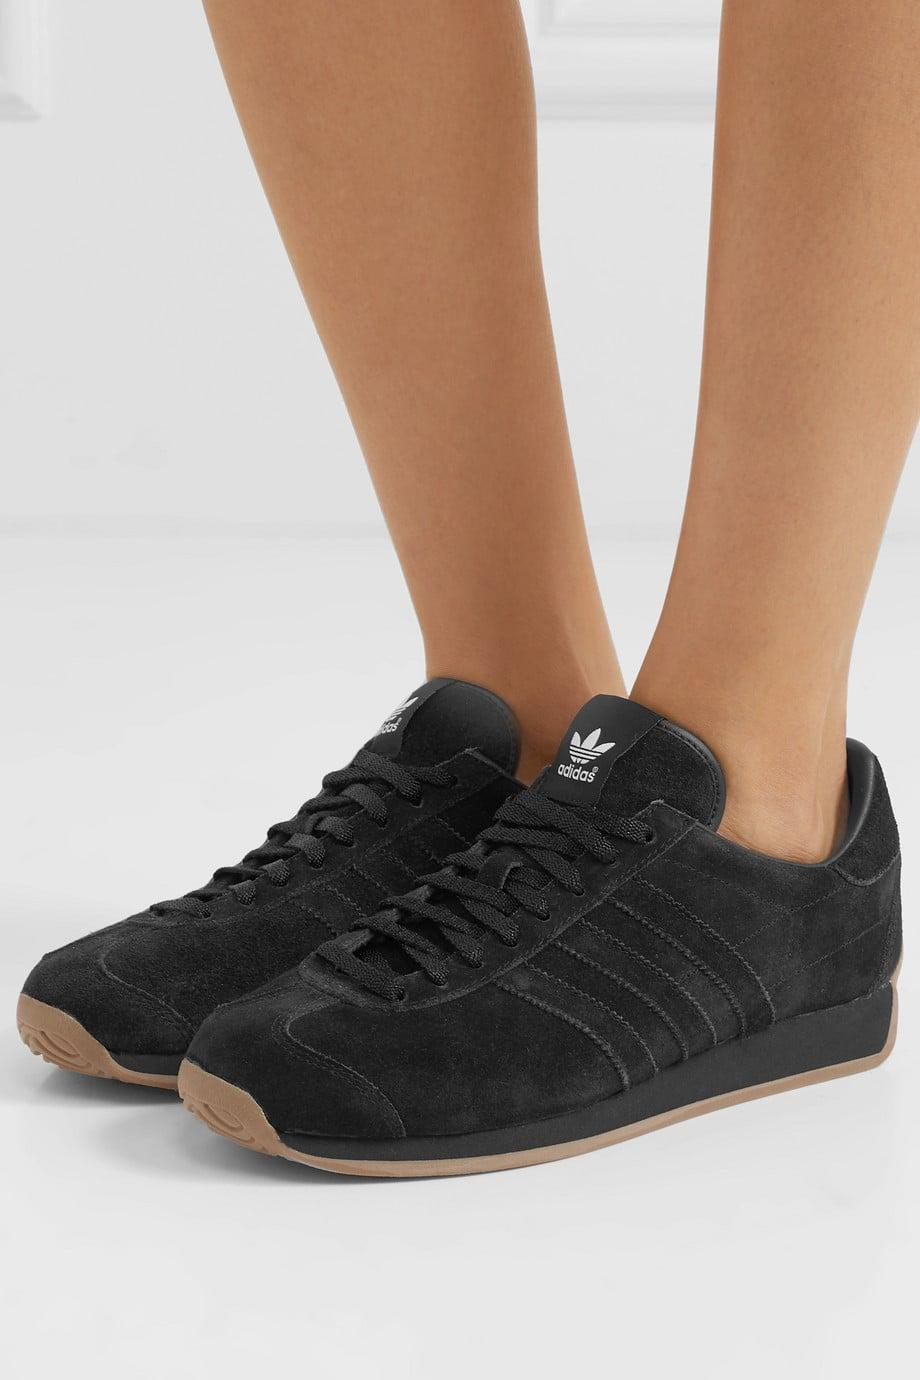 "<p><a href=""https://www.popsugar.com/buy/Khaite---Adidas-Originals-suede-Sneakers-509671?p_name=Khaite%20-%20%2B%20Adidas%20Originals%20suede%20Sneakers&retailer=net-a-porter.com&pid=509671&price=200&evar1=fab%3Aus&evar9=44311634&evar98=https%3A%2F%2Fwww.popsugar.com%2Ffashion%2Fphoto-gallery%2F44311634%2Fimage%2F46920956%2FKhaite---Adidas-Originals-suede-Sneakers&list1=shopping%2Cshoes%2Csneakers%2Choliday%2Cgift%20guide%2Ceditors%20pick%2Cfashion%20gifts%2Cgifts%20for%20women&prop13=api&pdata=1"" class=""link rapid-noclick-resp"" rel=""nofollow noopener"" target=""_blank"" data-ylk=""slk:Khaite - + Adidas Originals suede Sneakers"">Khaite - + Adidas Originals suede Sneakers</a> ($200)</p> <p>""I first noticed these sneakers when <a class=""link rapid-noclick-resp"" href=""https://www.popsugar.com/Katie-Holmes"" rel=""nofollow noopener"" target=""_blank"" data-ylk=""slk:Katie Holmes"">Katie Holmes</a> was spotted wearing them out and about. The monochromatic all-black look is sleek yet wearable."" - Lisa Sugar, founder and president, POPSUGAR</p>"